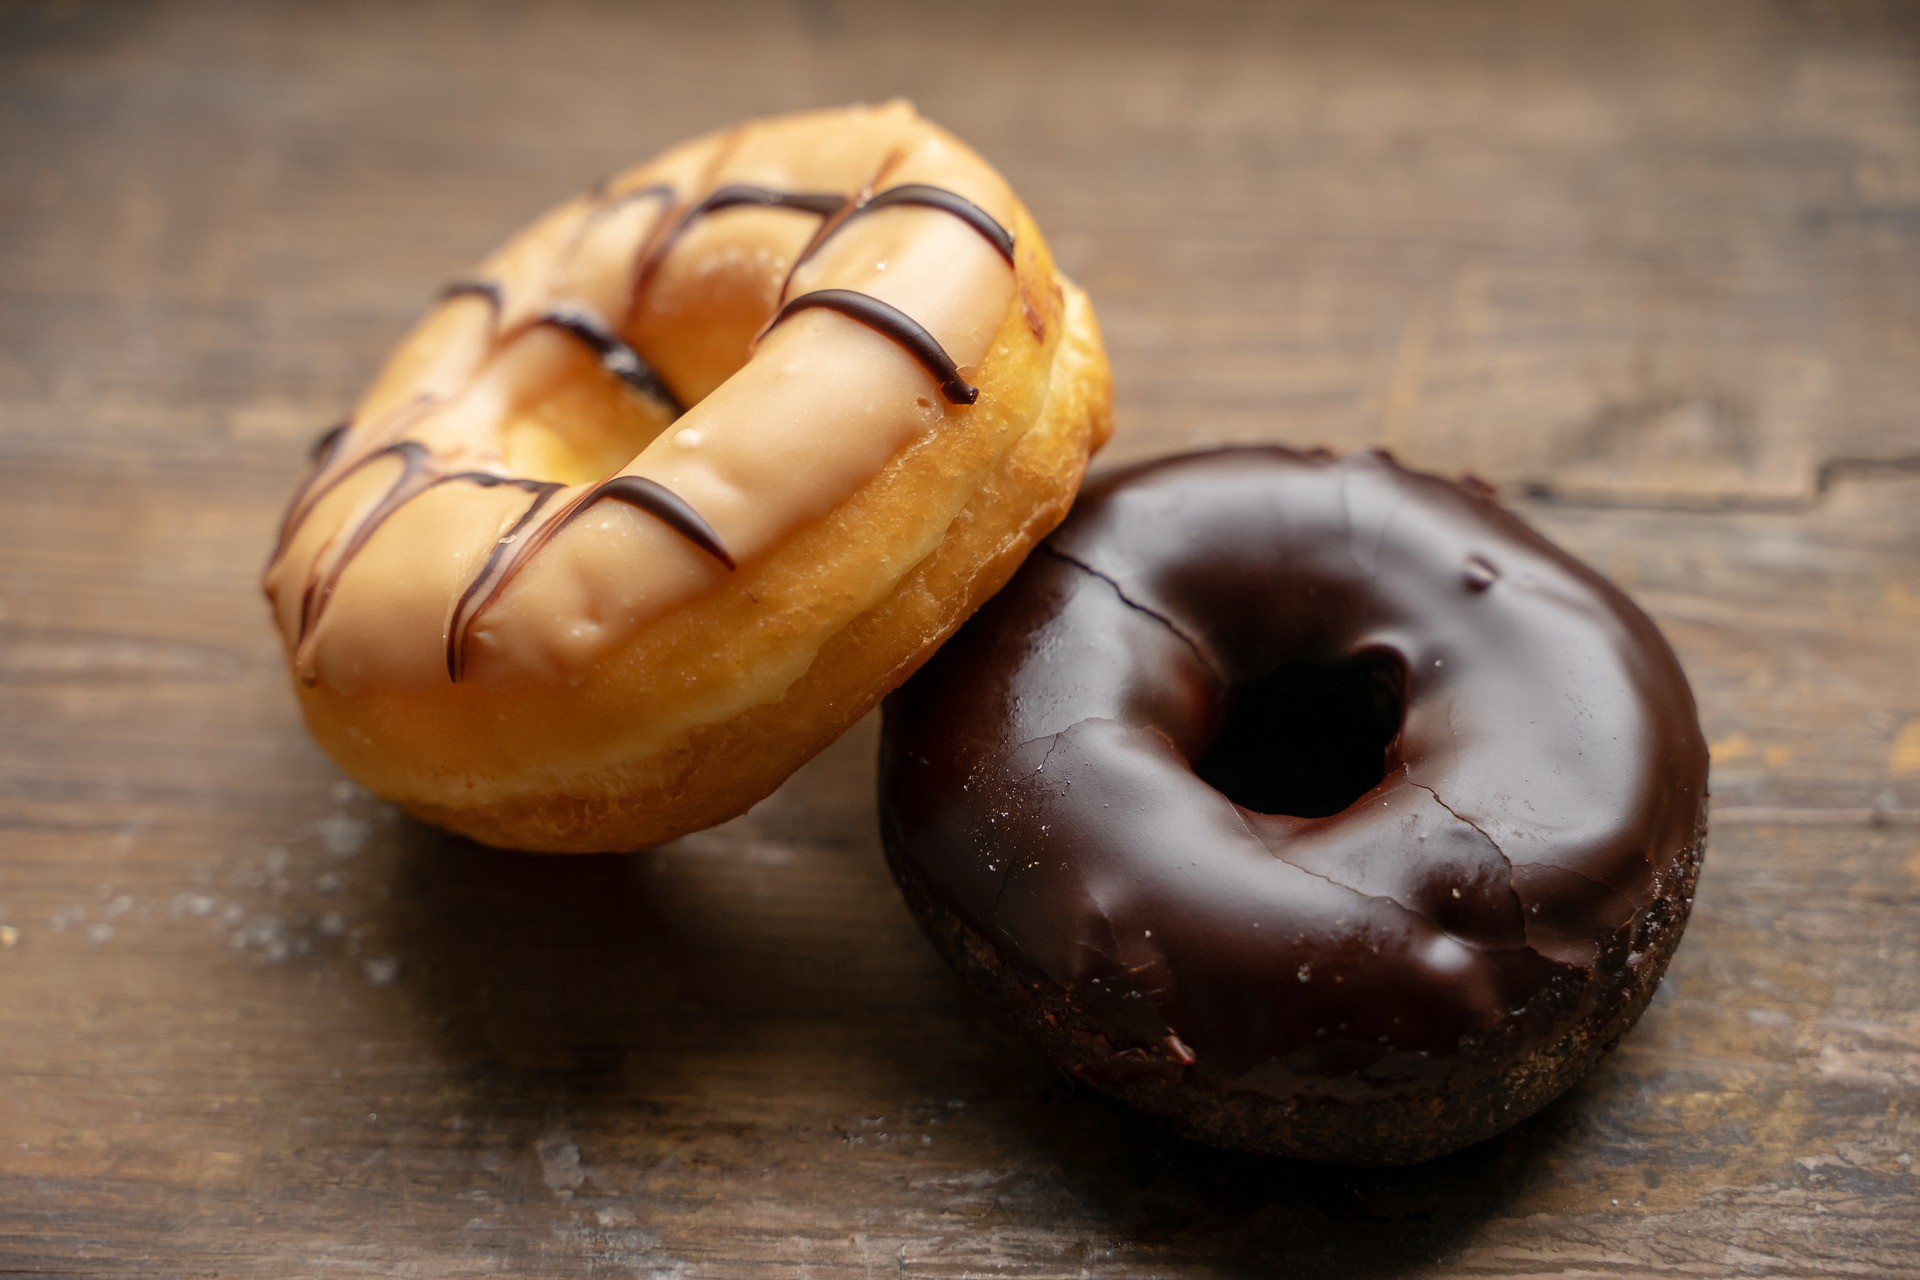 Two doughnuts on a wooden table